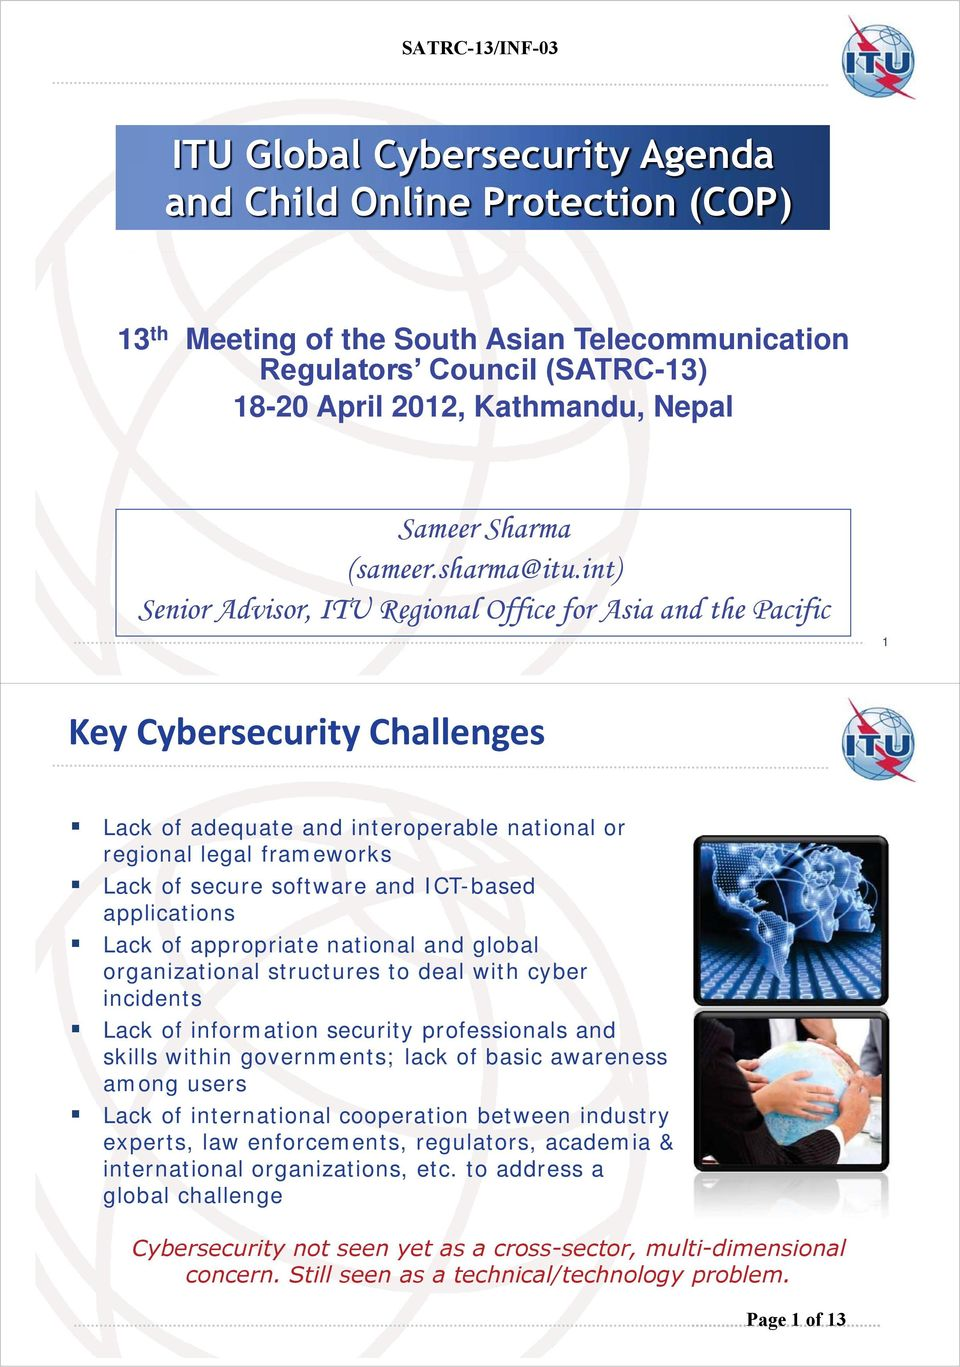 int) Senior Advisor, ITU Regional Office for Asia and the Pacific 1 Key Cybersecurity Challenges Lack of adequate and interoperable national or regional legal frameworks Lack of secure software and